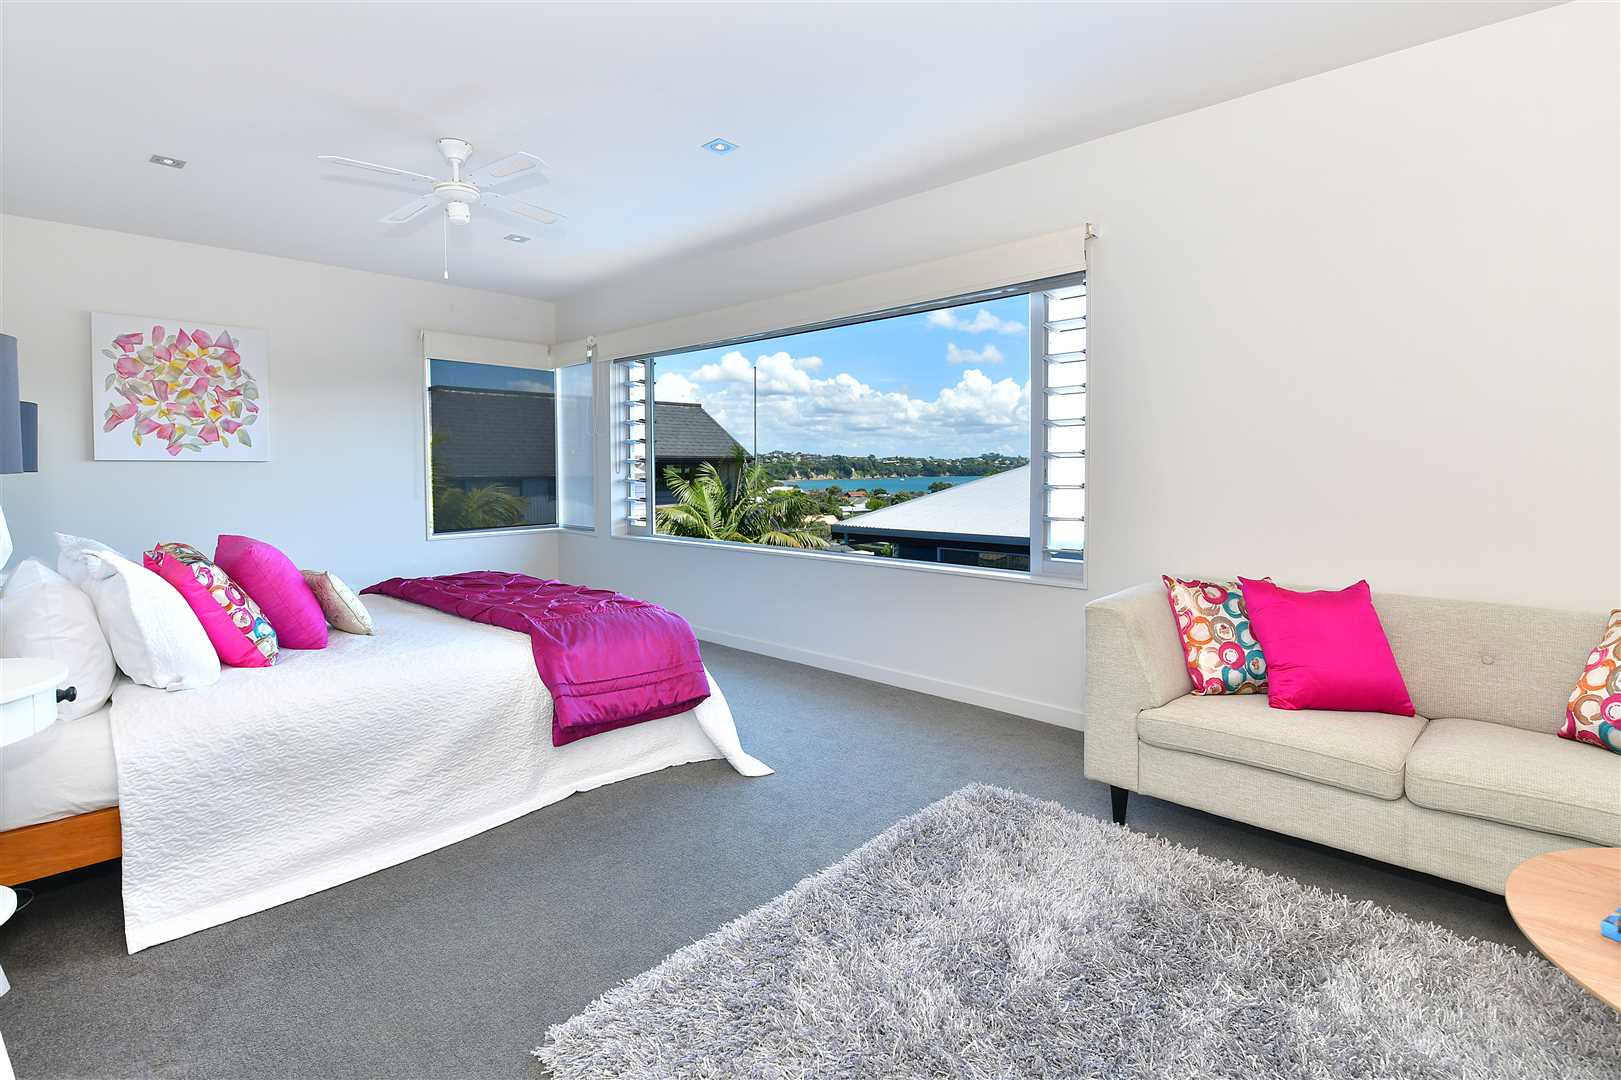 ... when its time to retire, the master suite is on the top level with some sea views